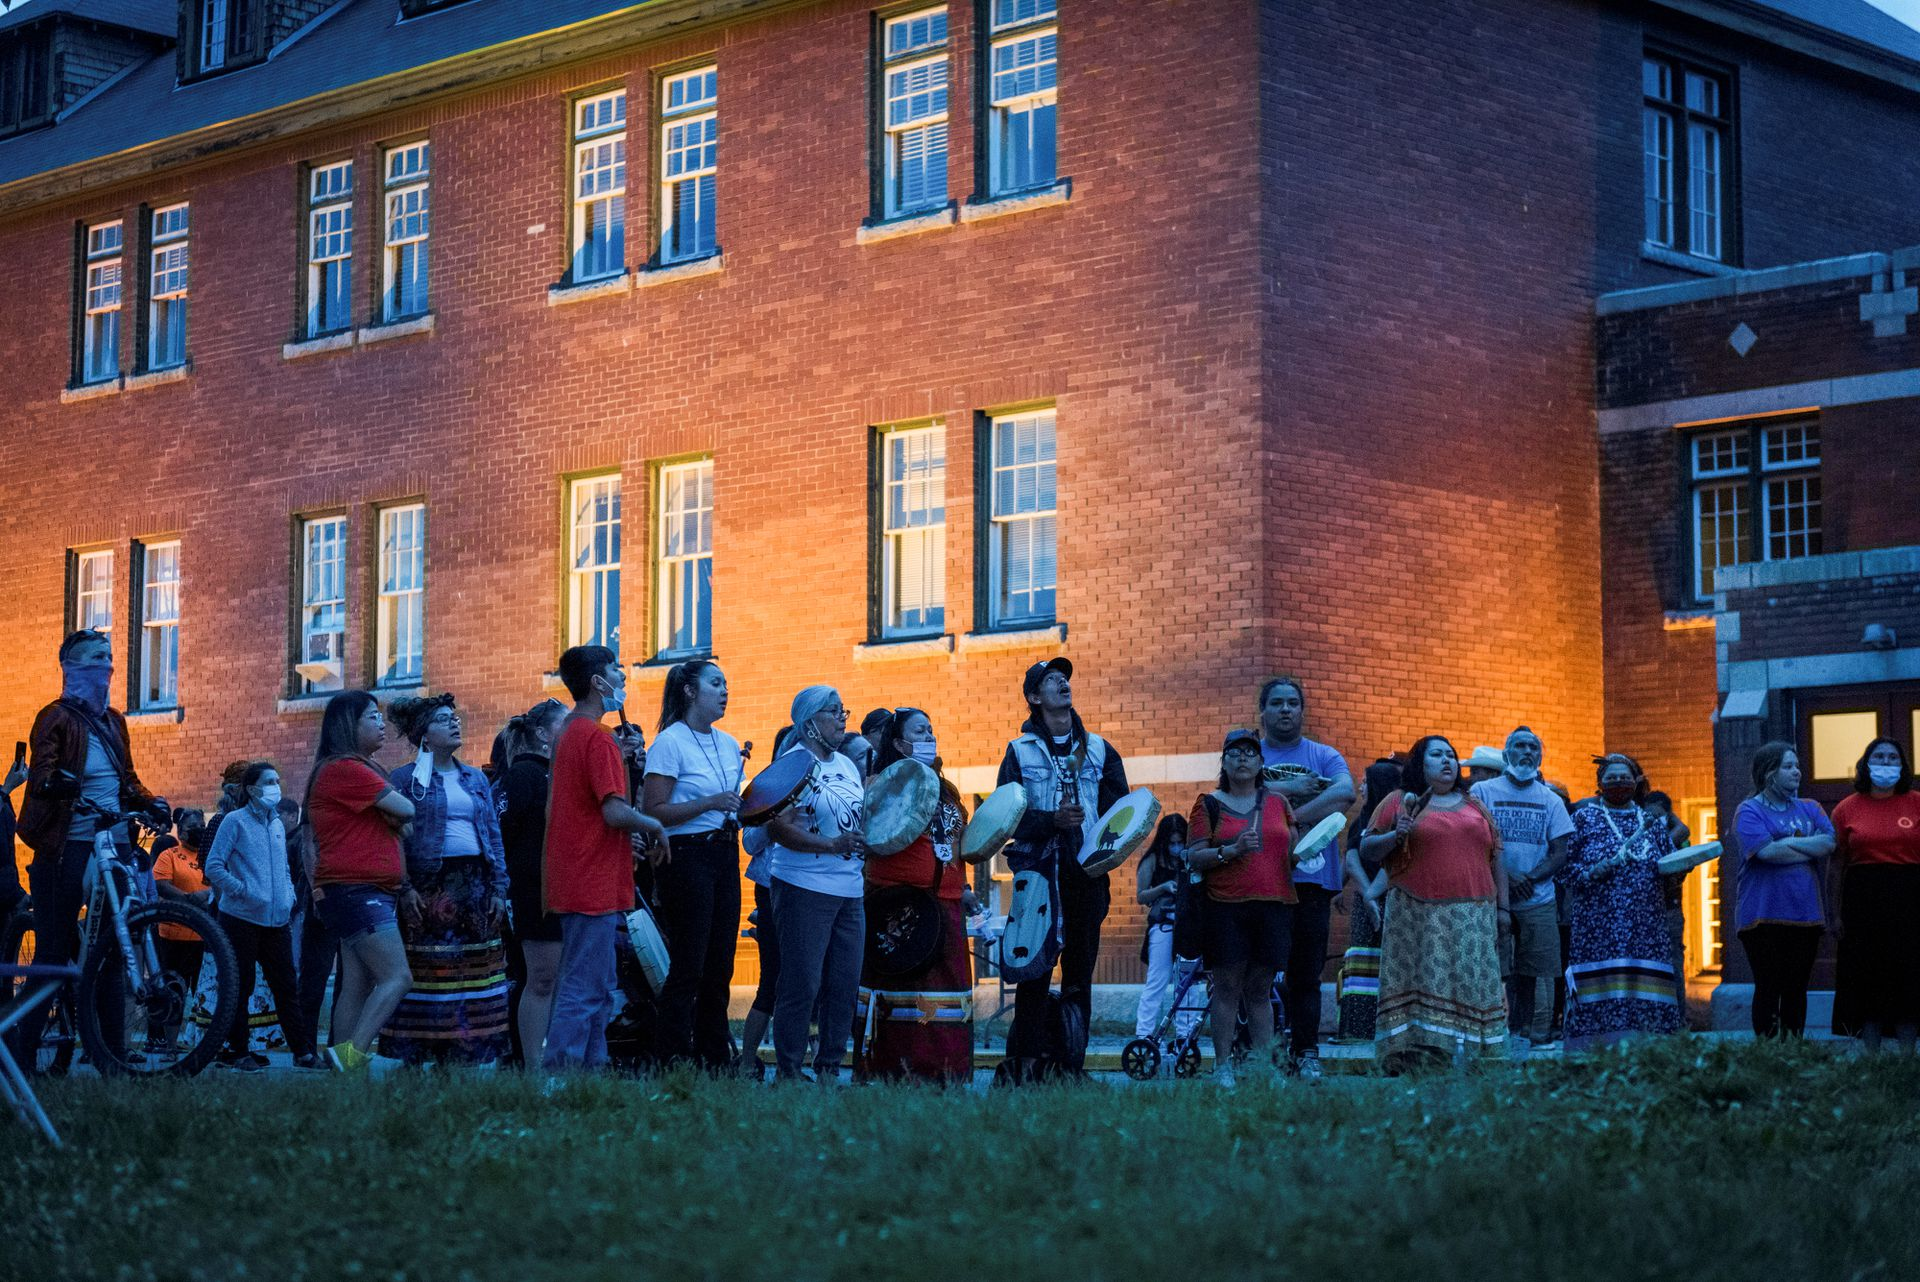 Kamloops residents and First Nations people gather to listen to drummers and singers at a memorial in front of the former Kamloops Indian Residential School after the remains of 215 children, some as young as three years old, were found at the site last week, in Kamloops, British Columbia, Canada May 31, 2021. Photo: Reuters